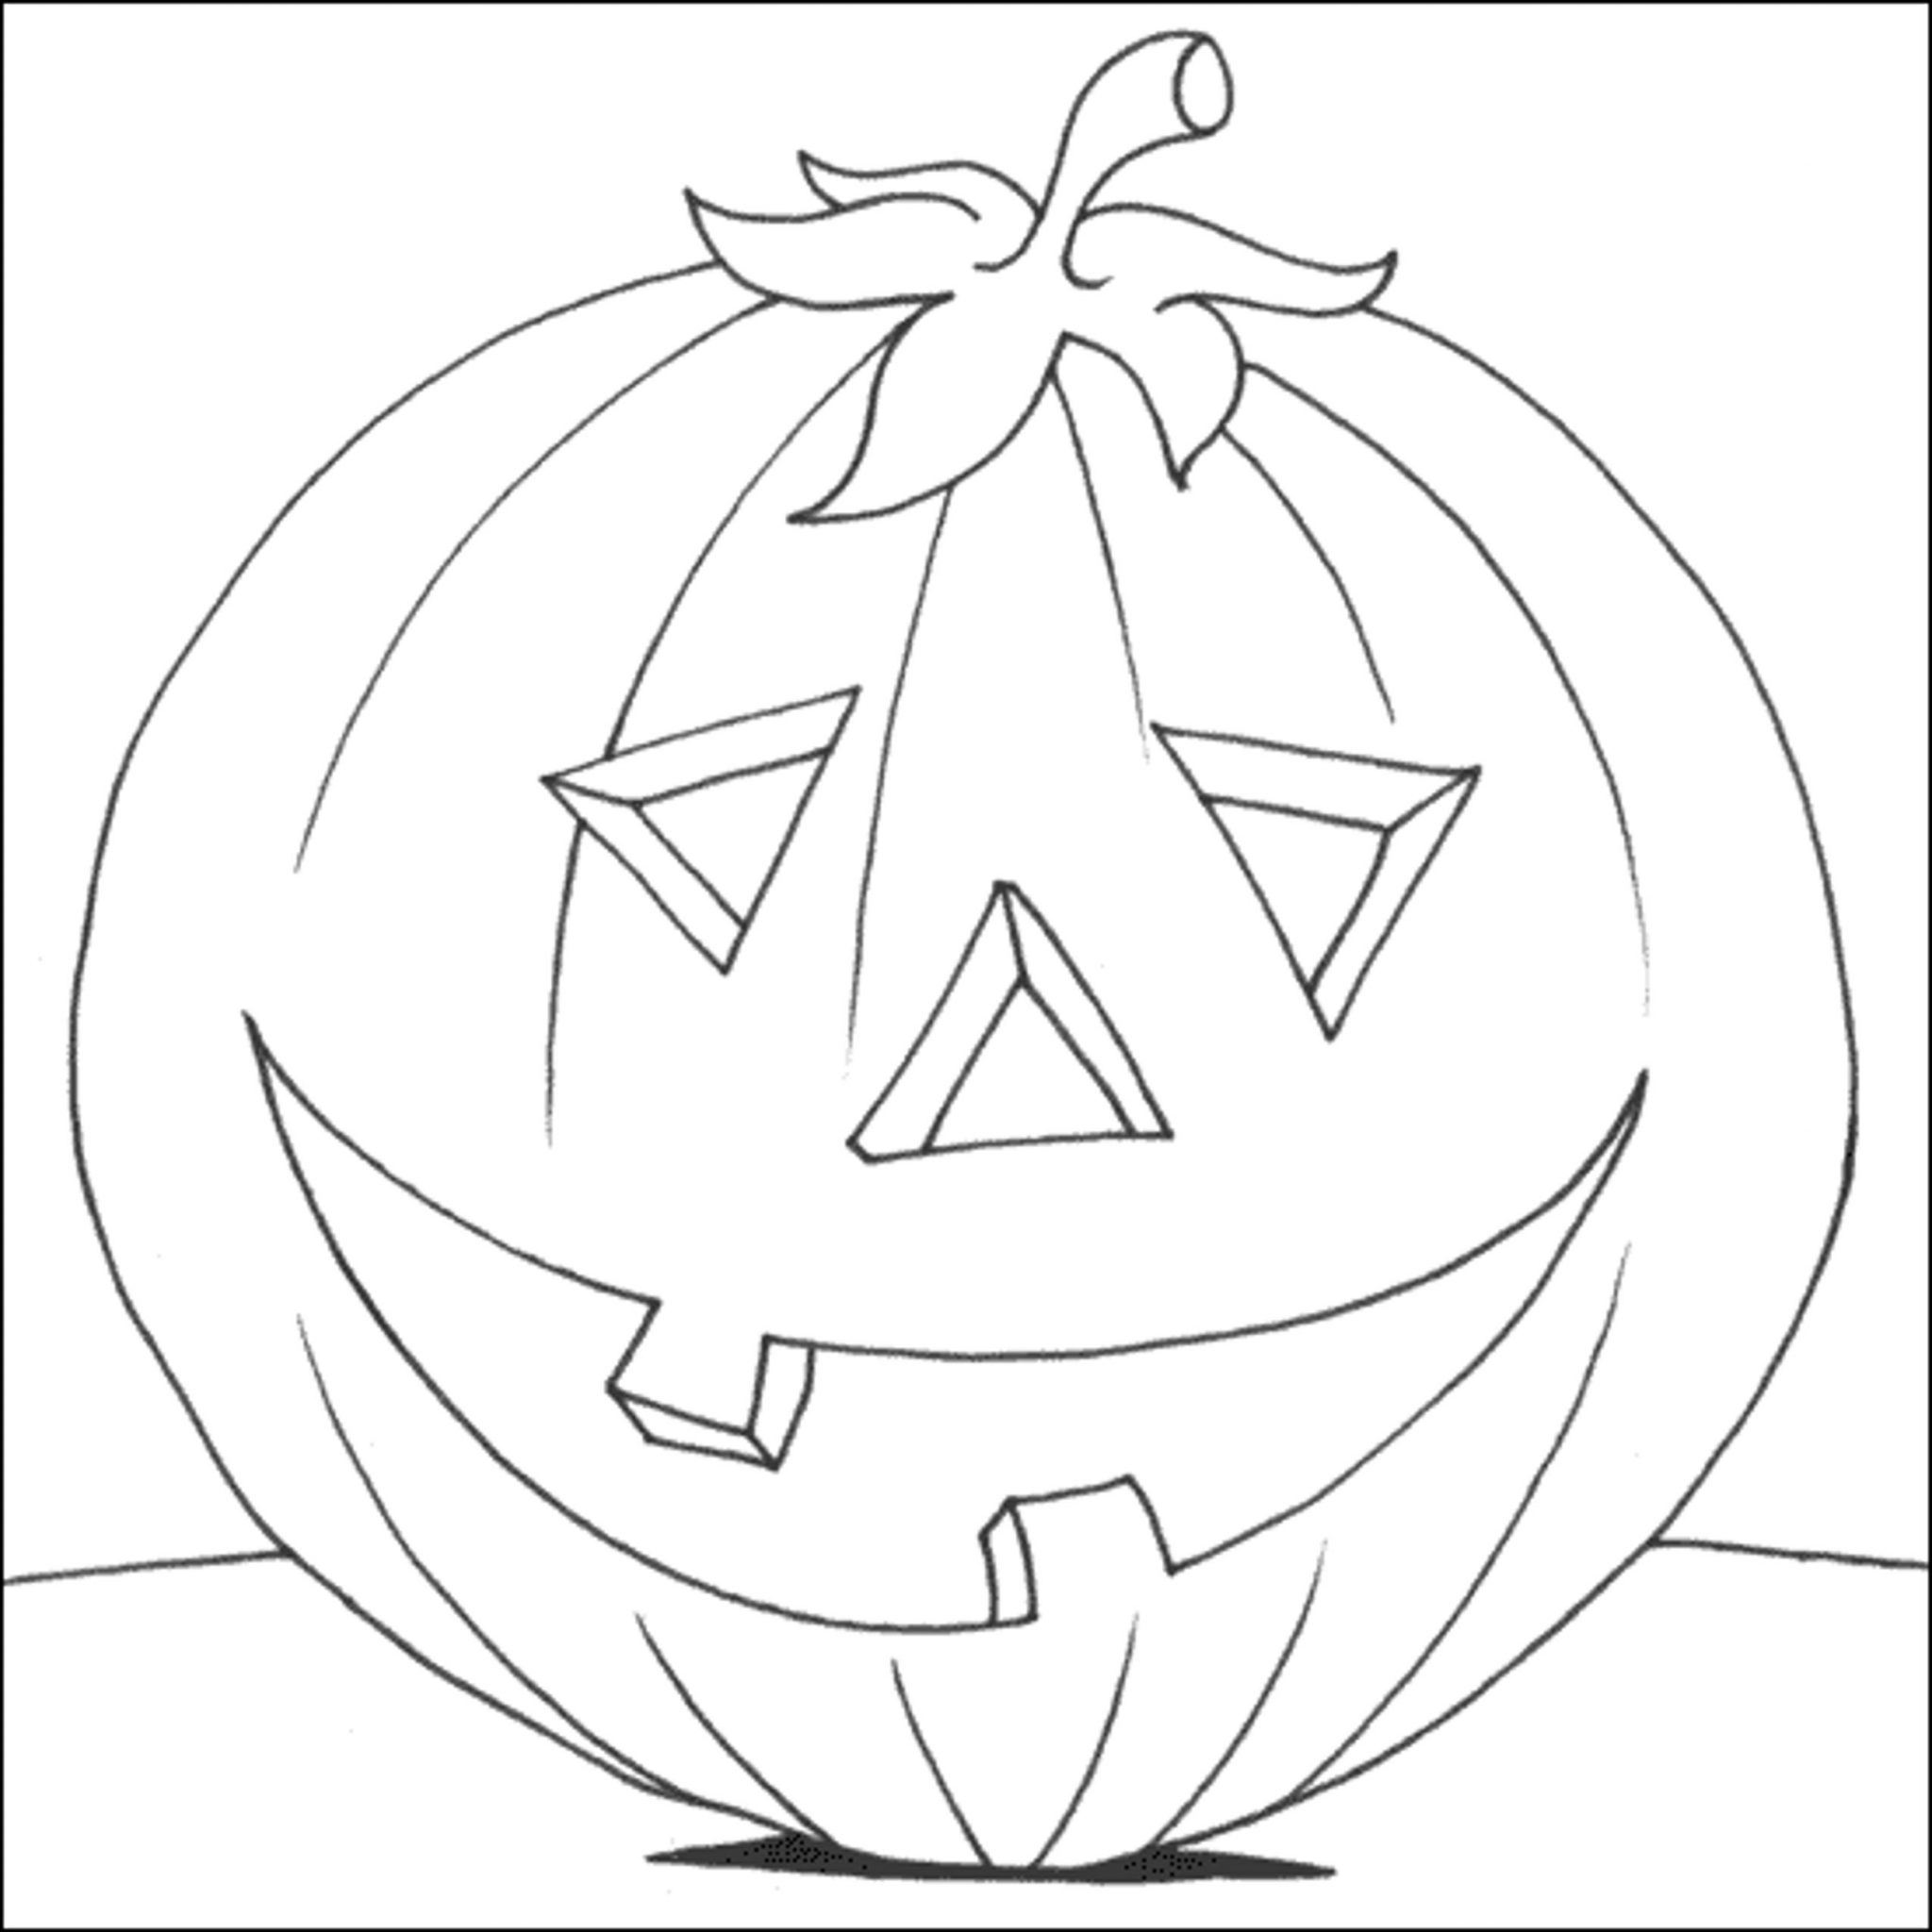 pumpkin colouring sheet pumpkin patch coloring page free download on clipartmag pumpkin sheet colouring